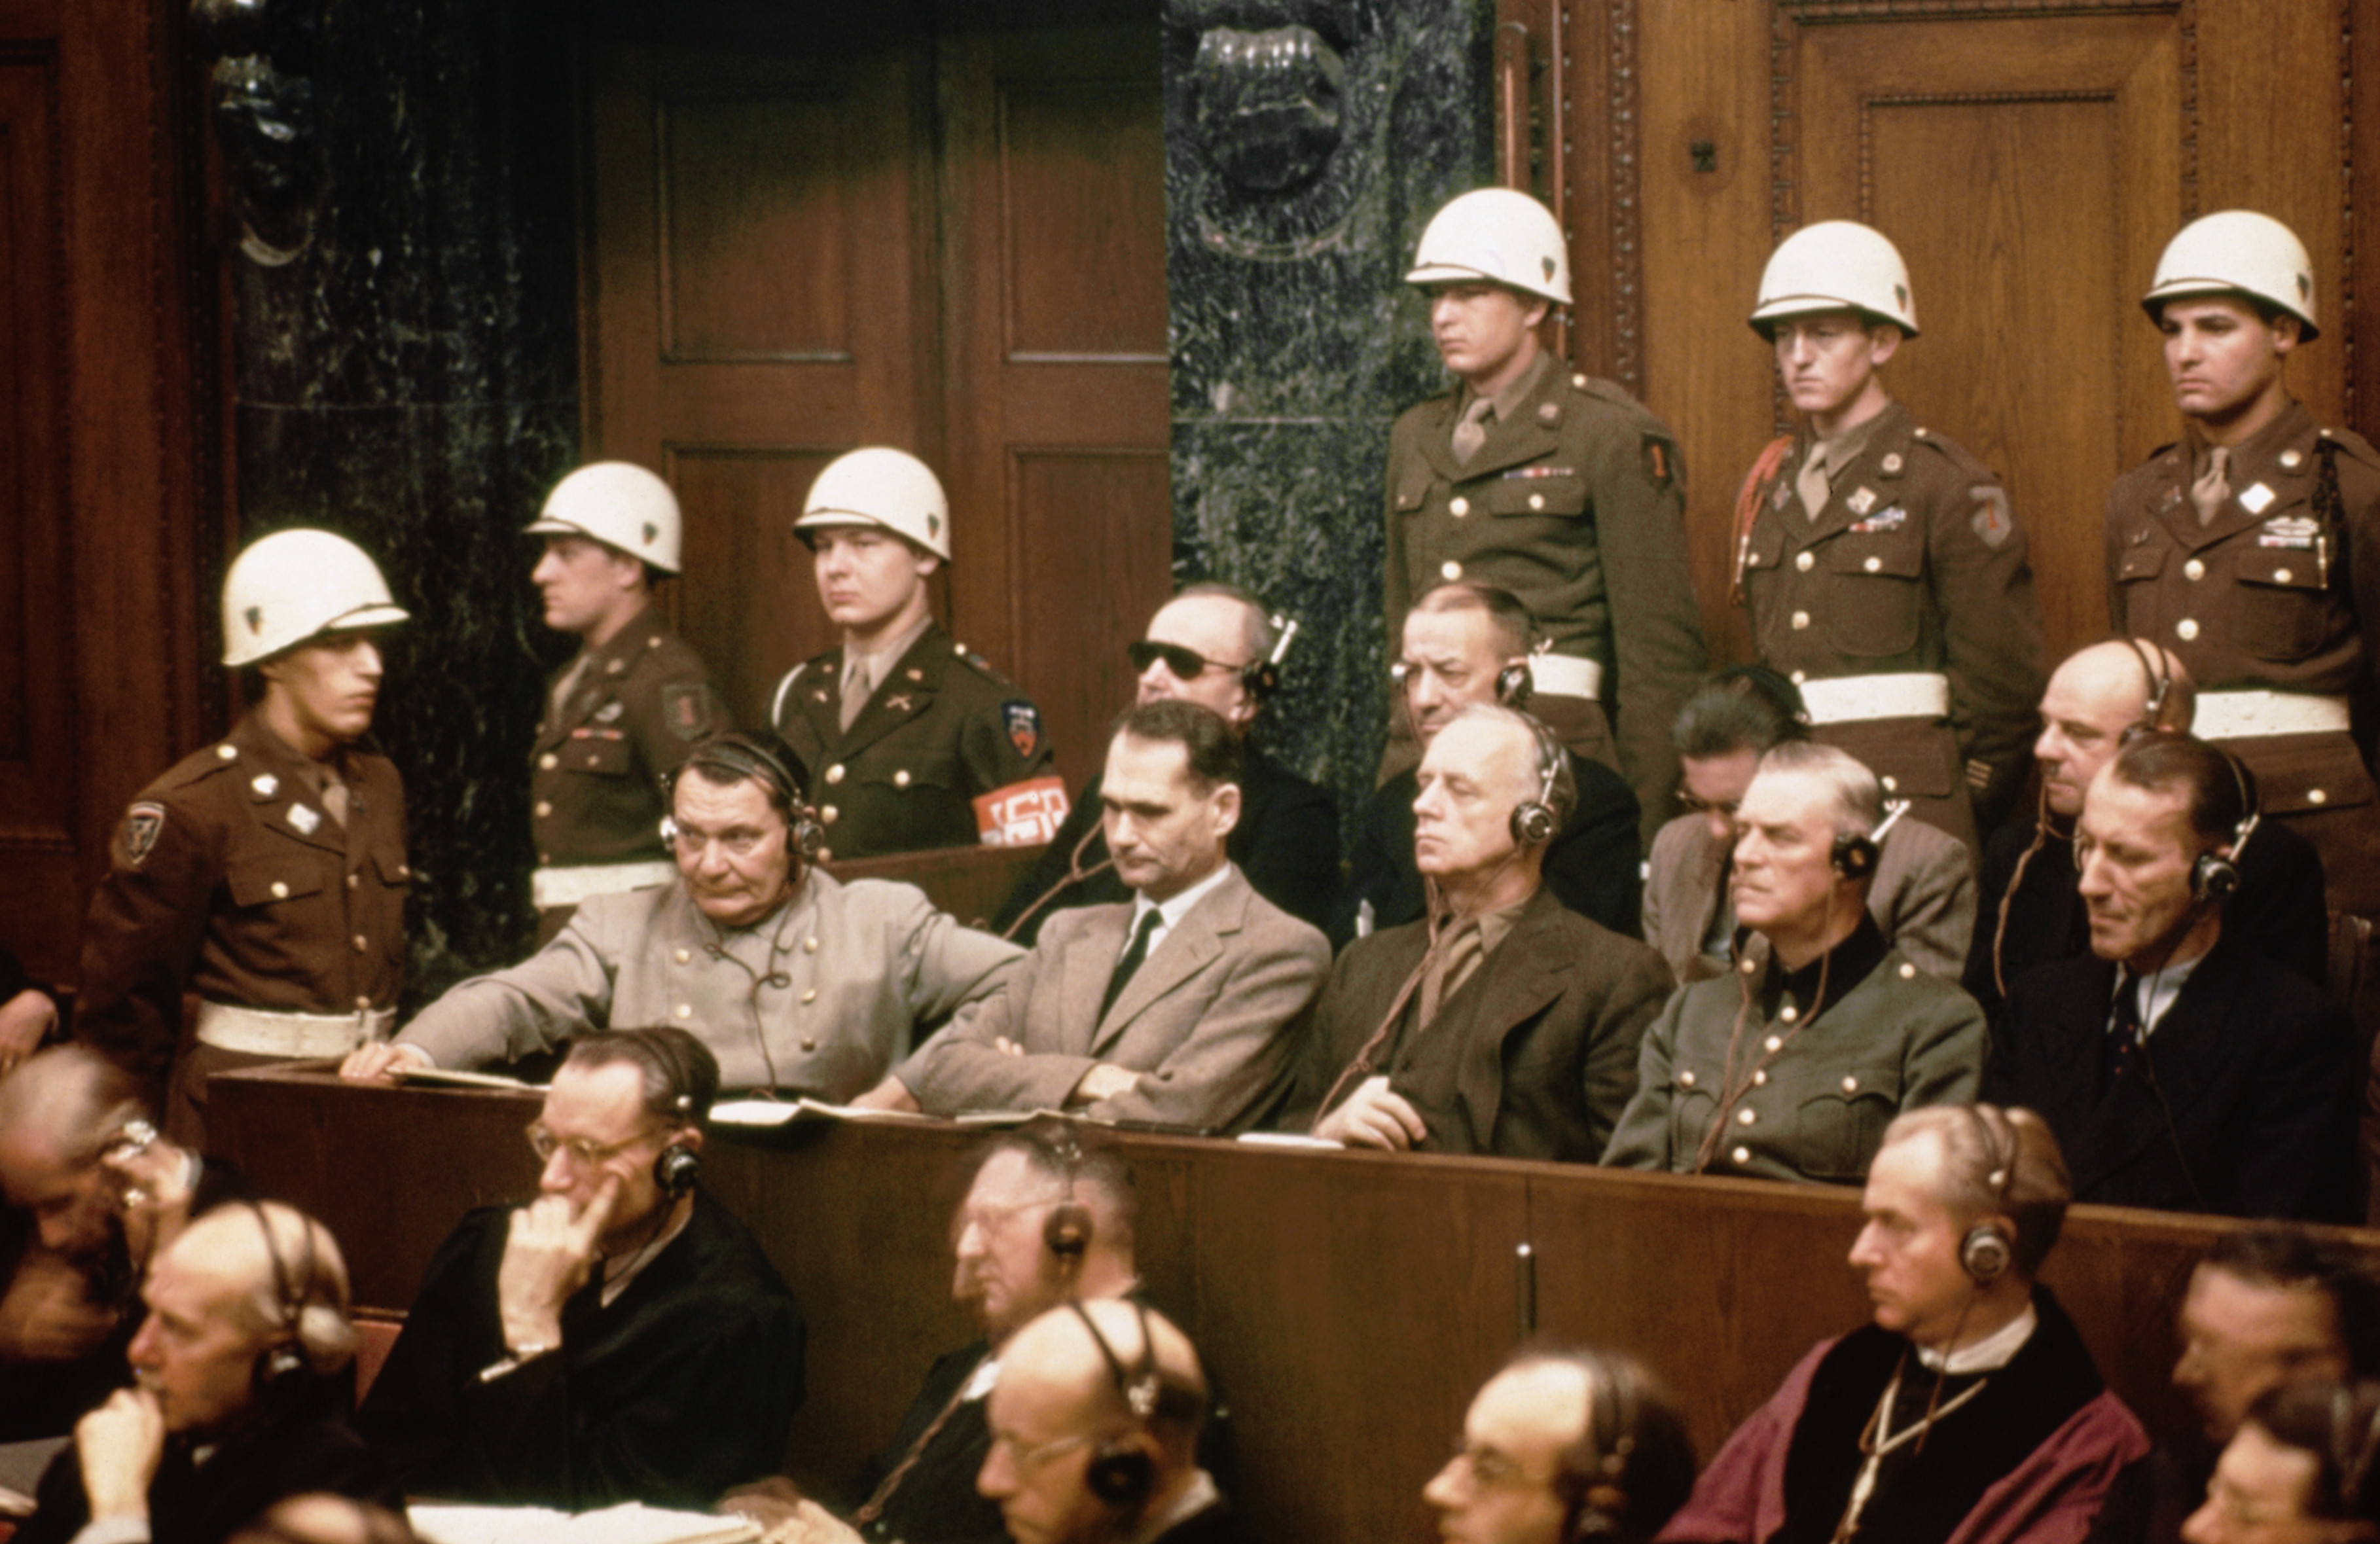 Image result for Nuremberg trials begin 1945 images